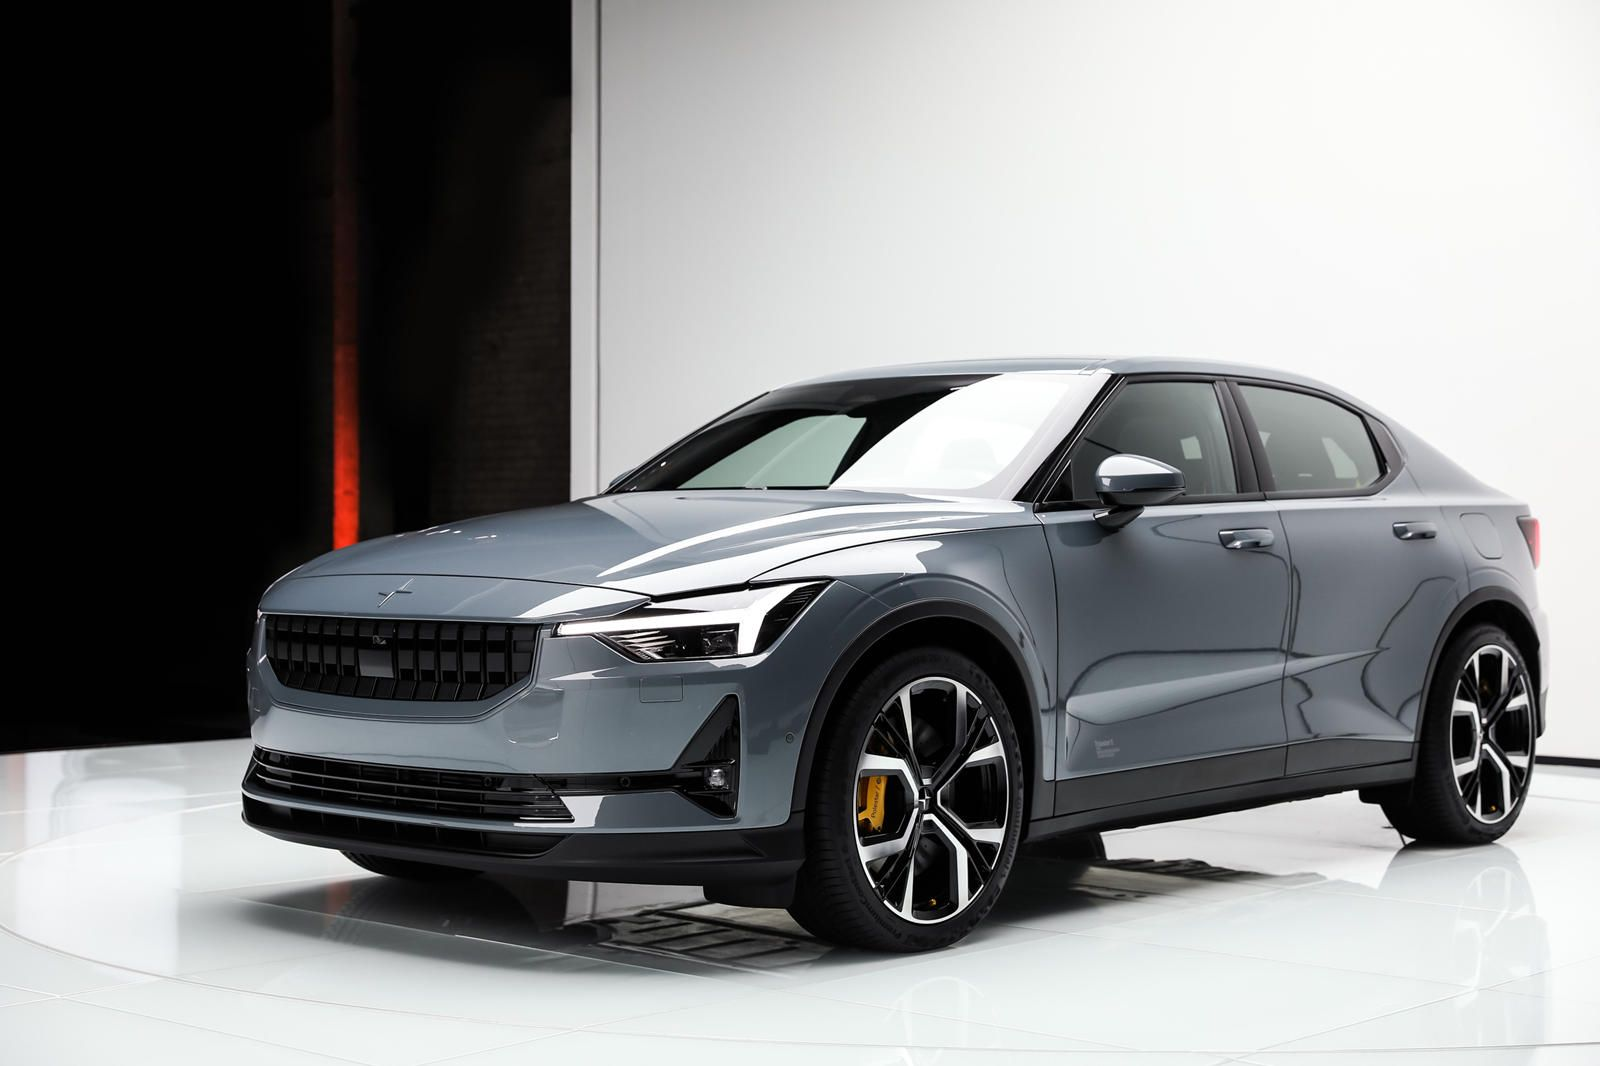 Can The Polestar 2 Performance Pack Outhandle The Tesla Model 3 Volvo Tesla Model Luxury London